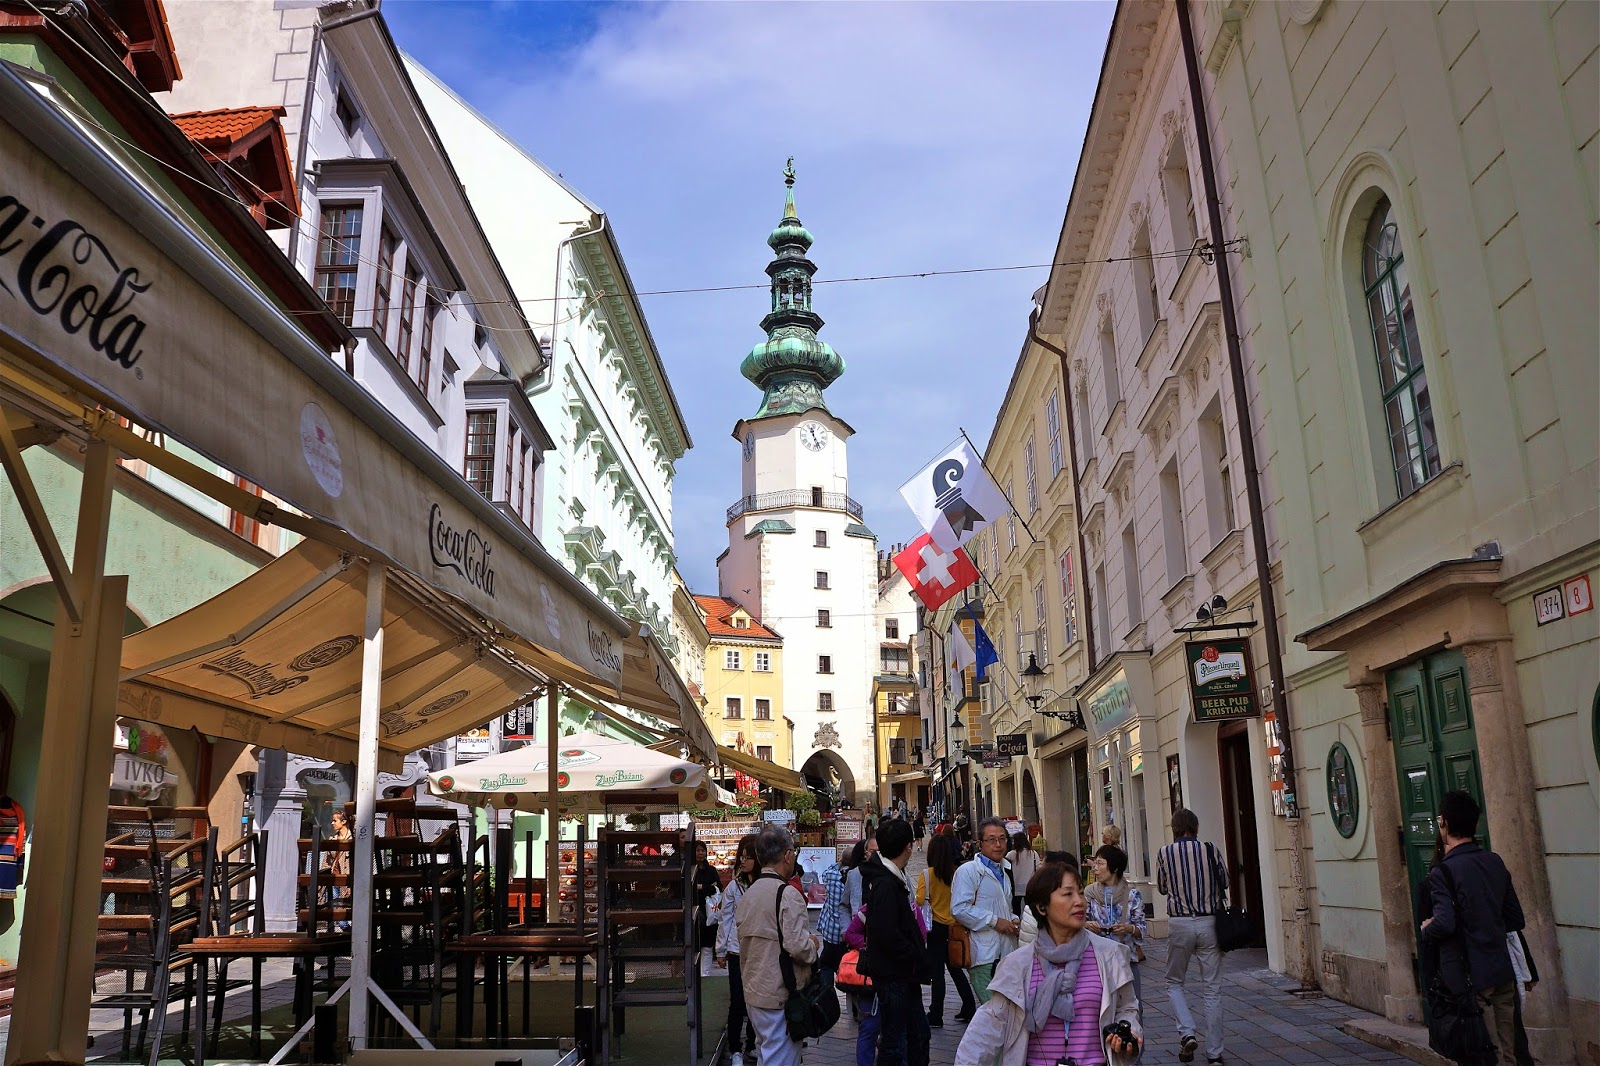 Picture from the old town of Bratislava.